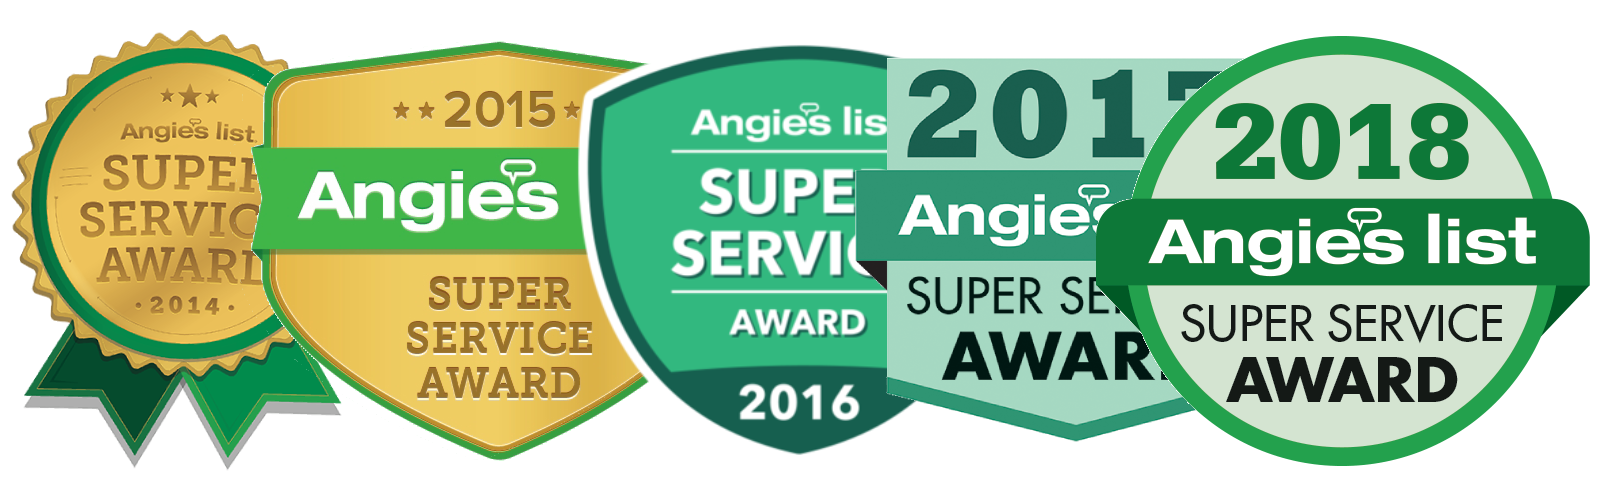 Winner of Angie's List Super Service Award every year since 2012